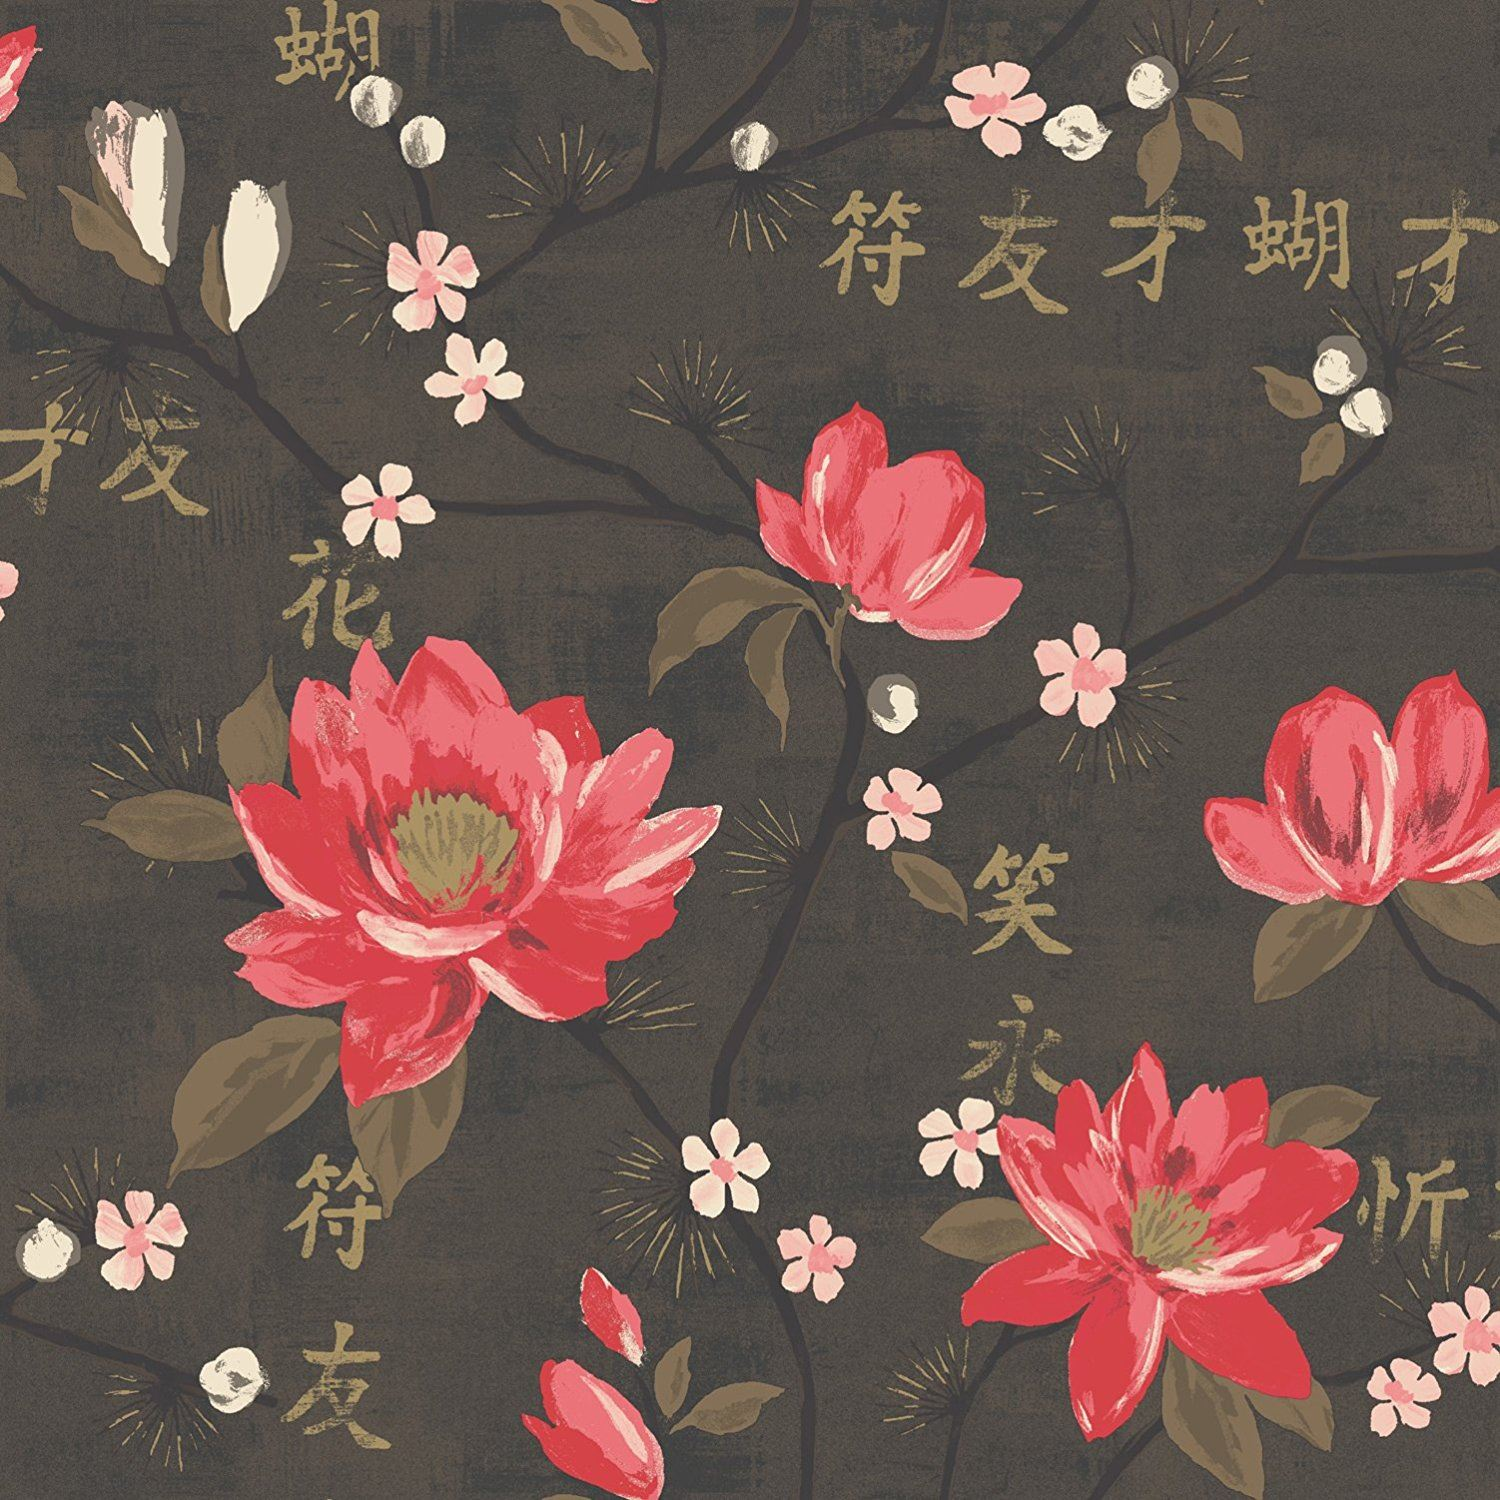 Flower Oriental Floral Wallpaper Kaori Red Charcoal Gold Paste The